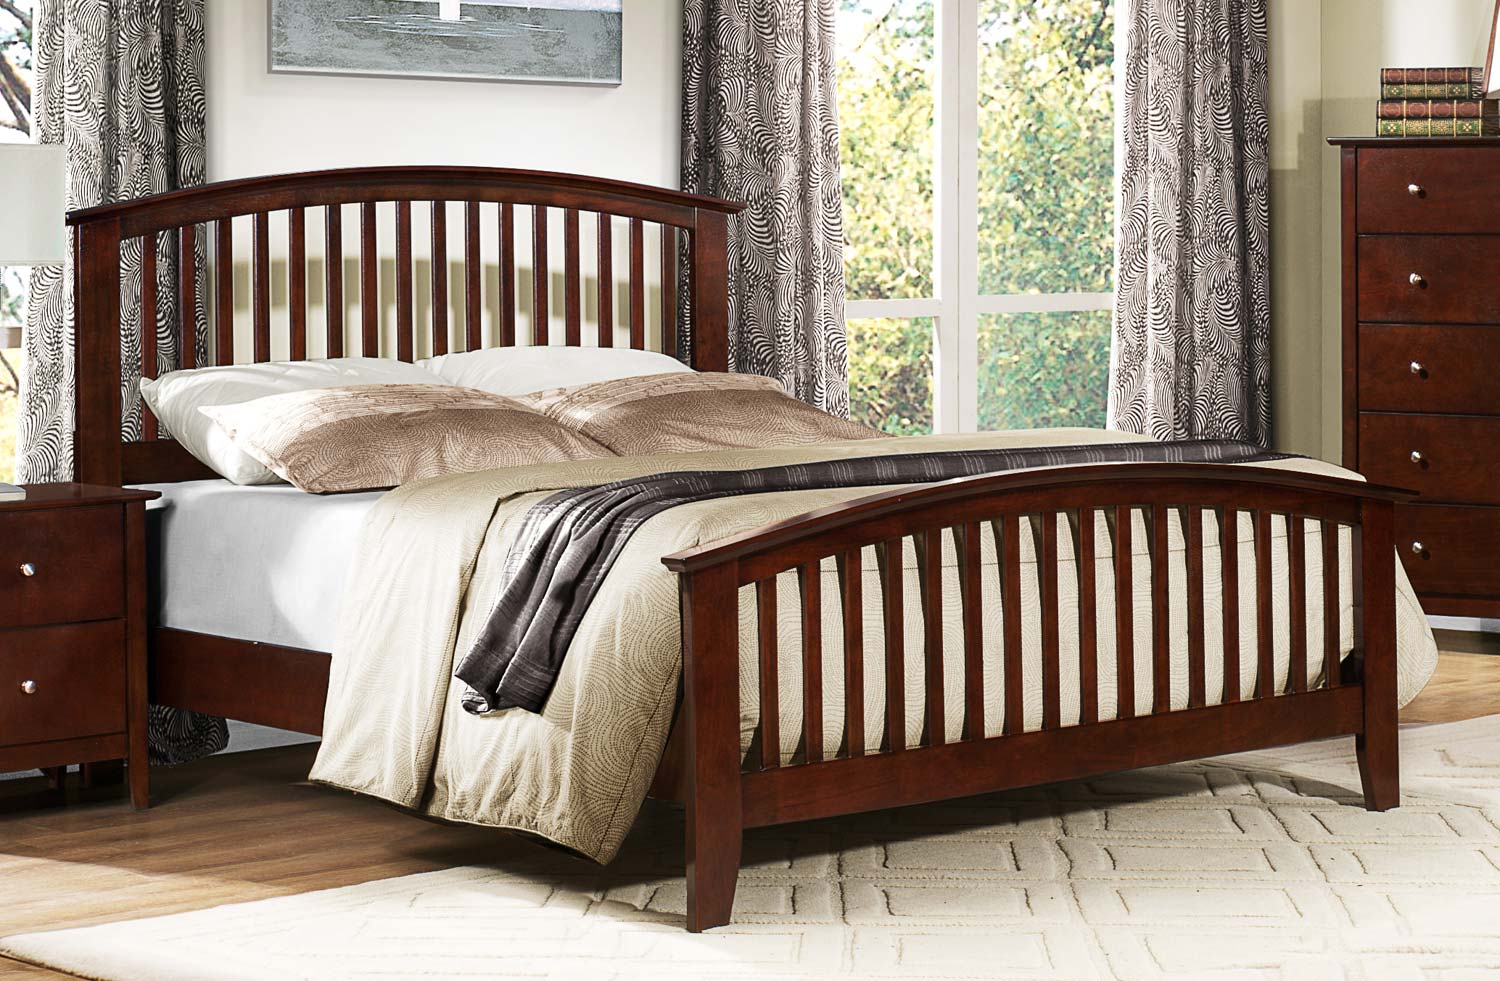 Homelegance Nancy Bed - Merlot